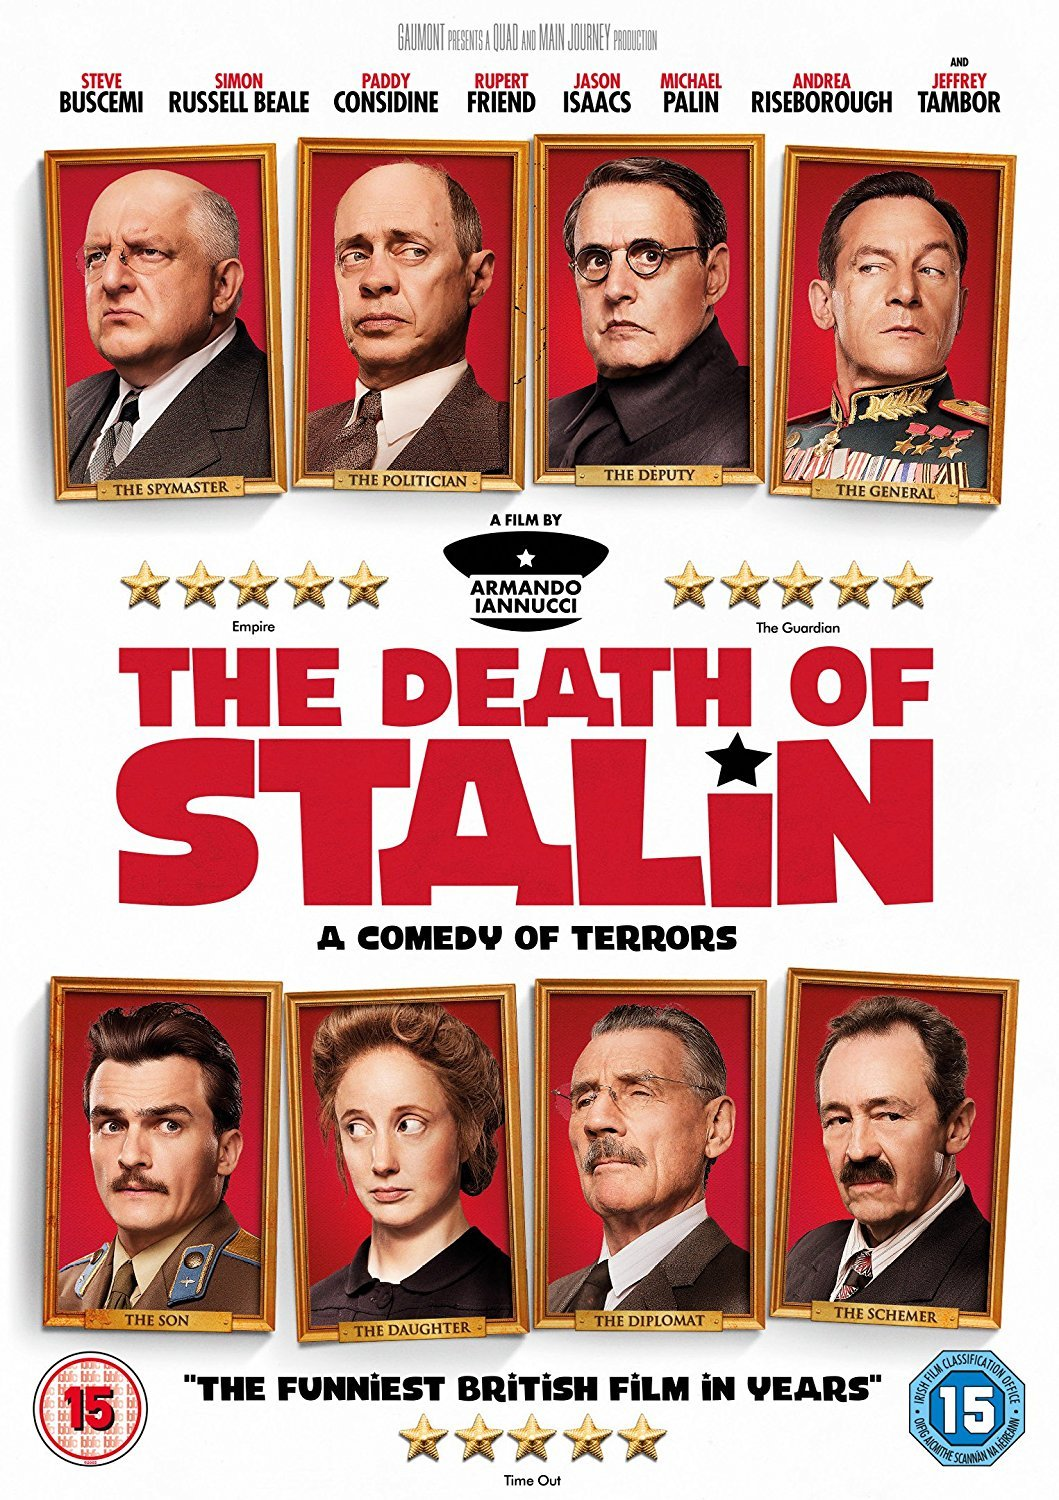 Amazon.com: The Death of Stalin [DVD] [2017]: Jason Isaacs, Steve Buscemi, Rupert Friend, Michael Palin, Andrea Riseborough, Olga Kurylenko, Simon Russell Beale, Jeffrey Tambor, Armando Iannucci: Movies & TV